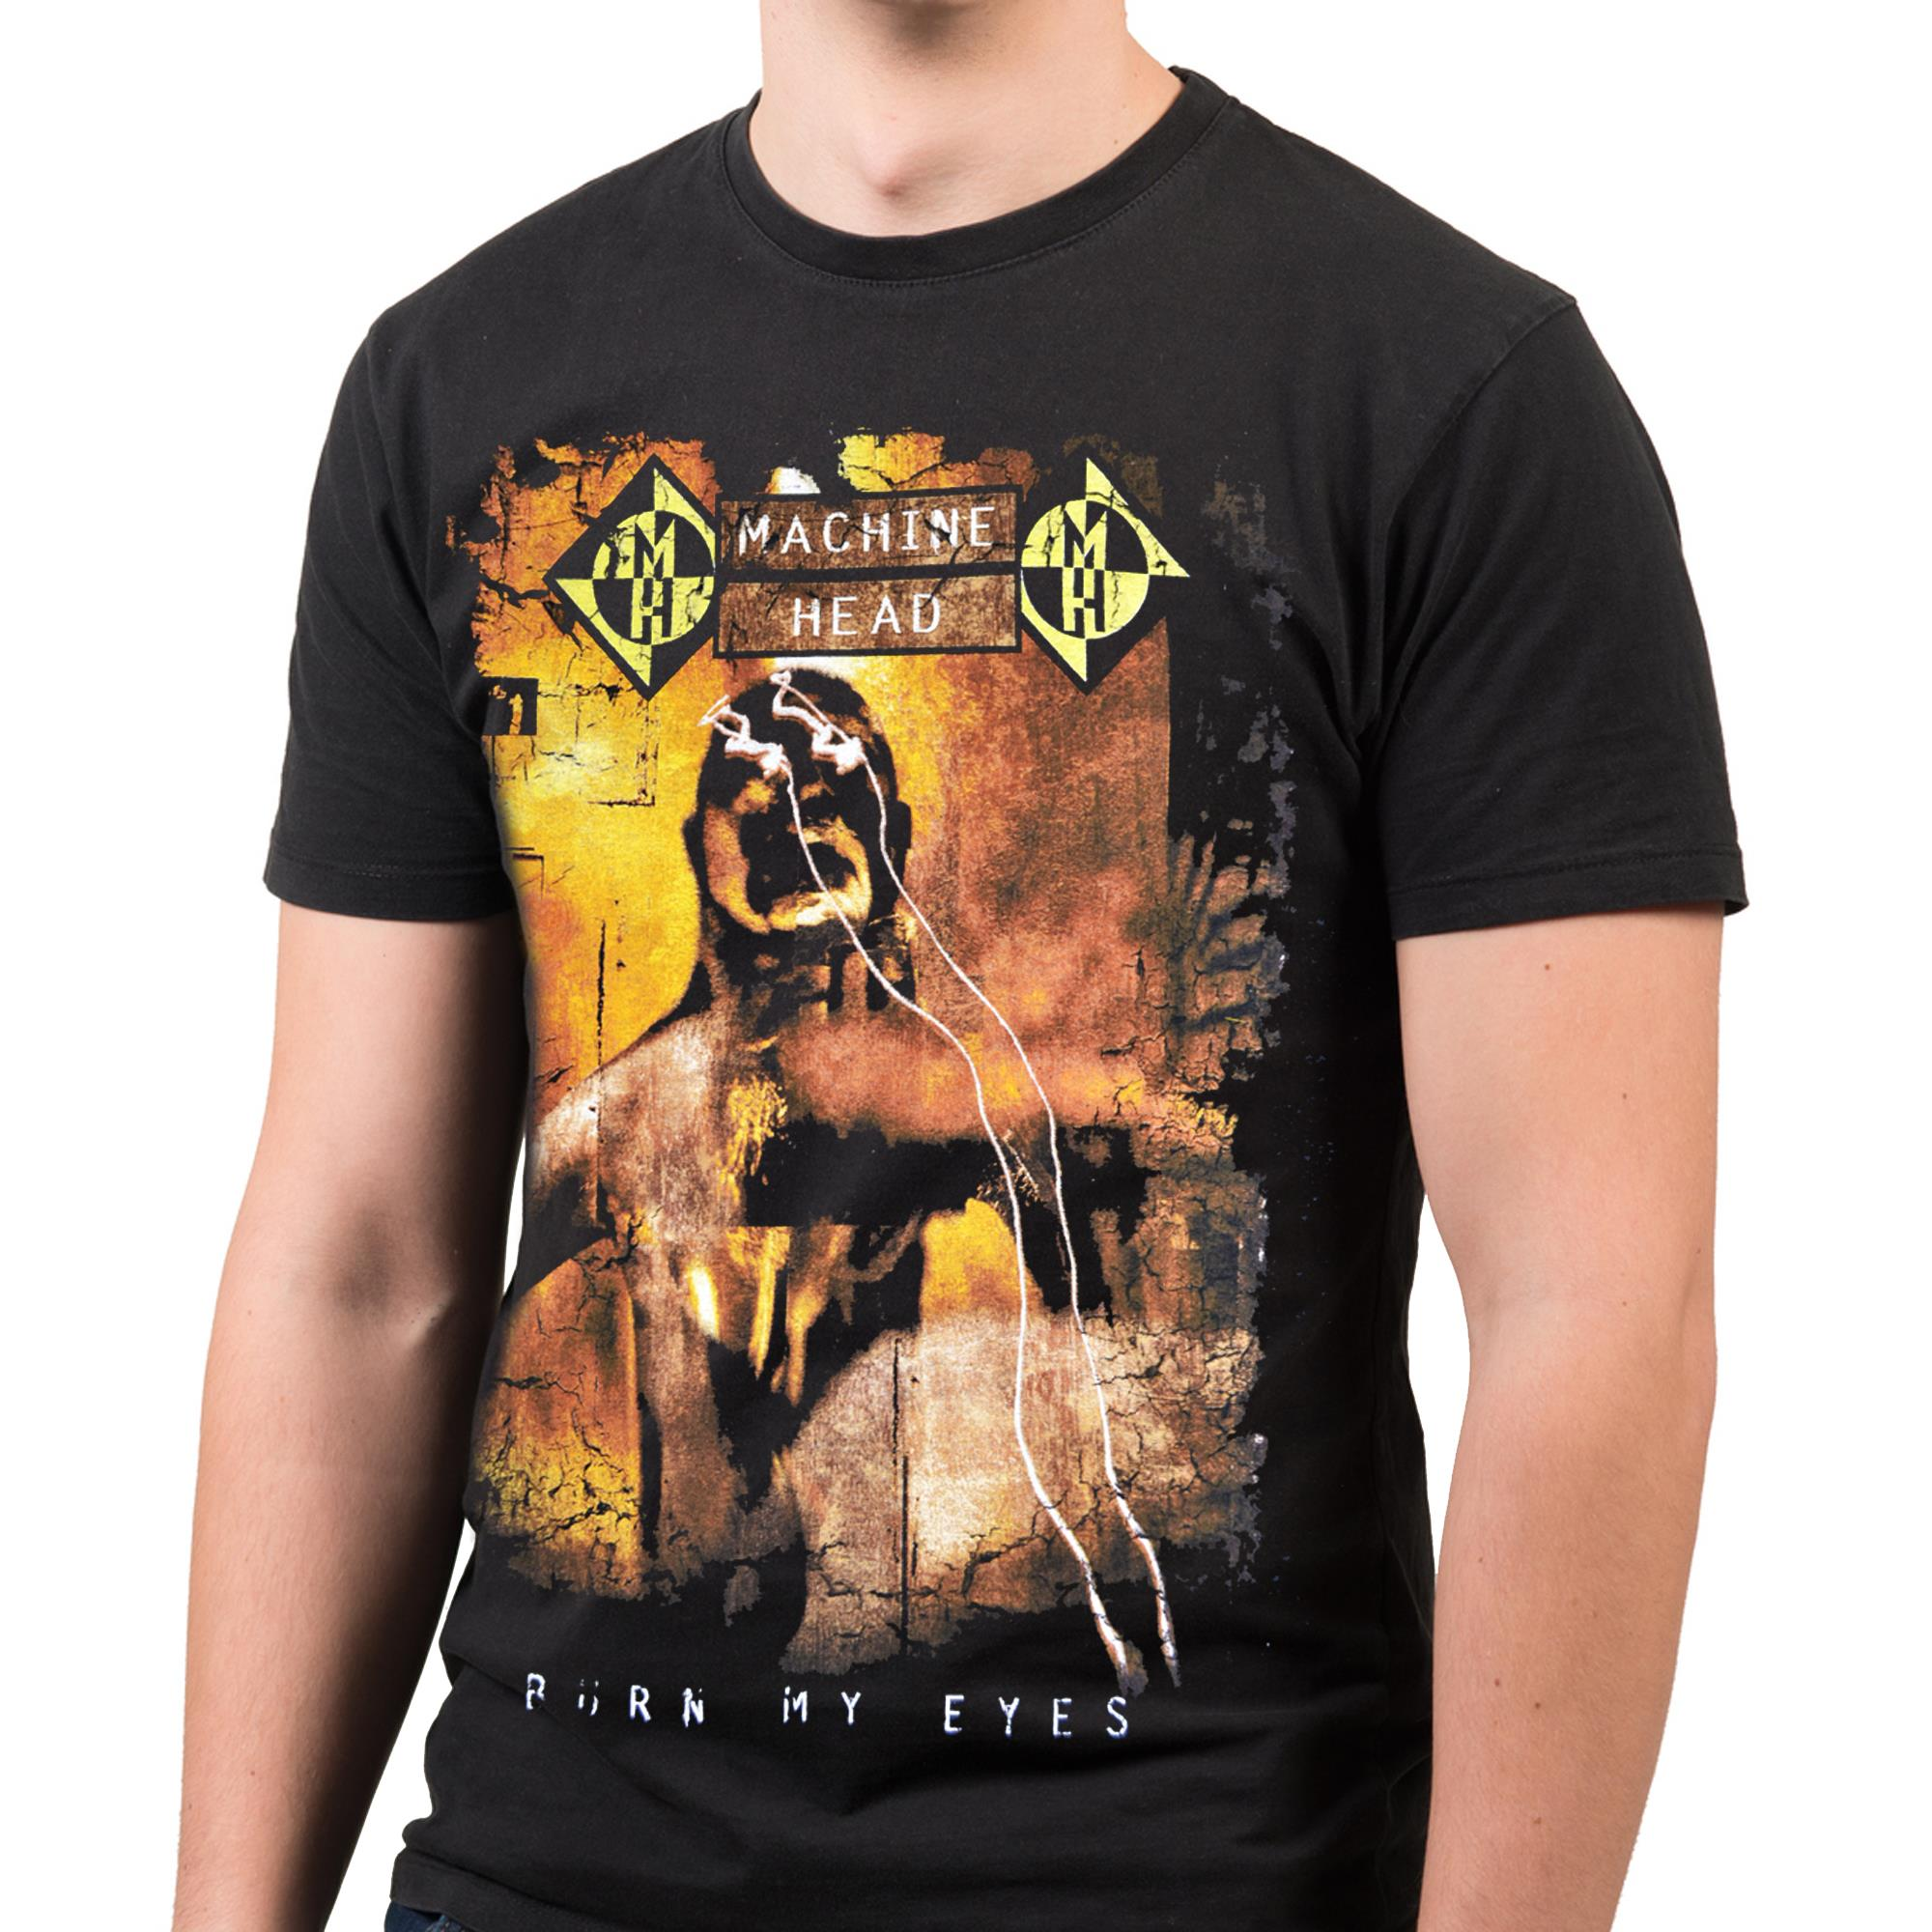 Burn My Eyes (Import) T-Shirt